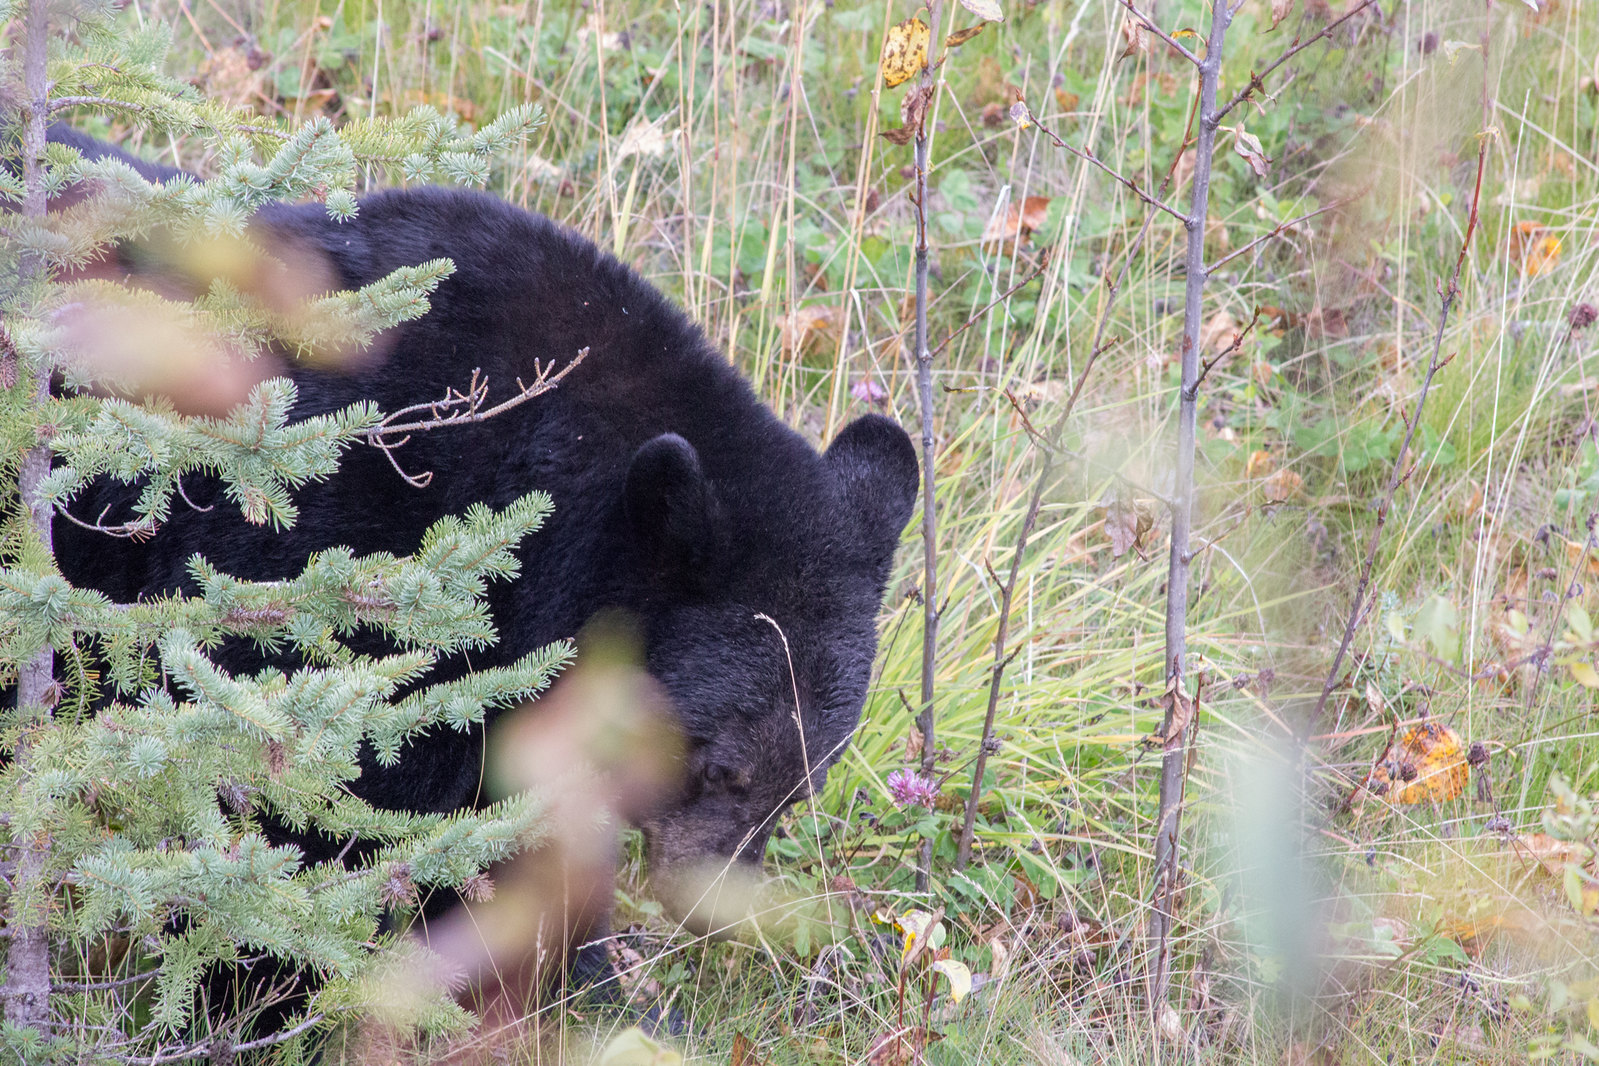 Safe and responsible bear watching in Canada